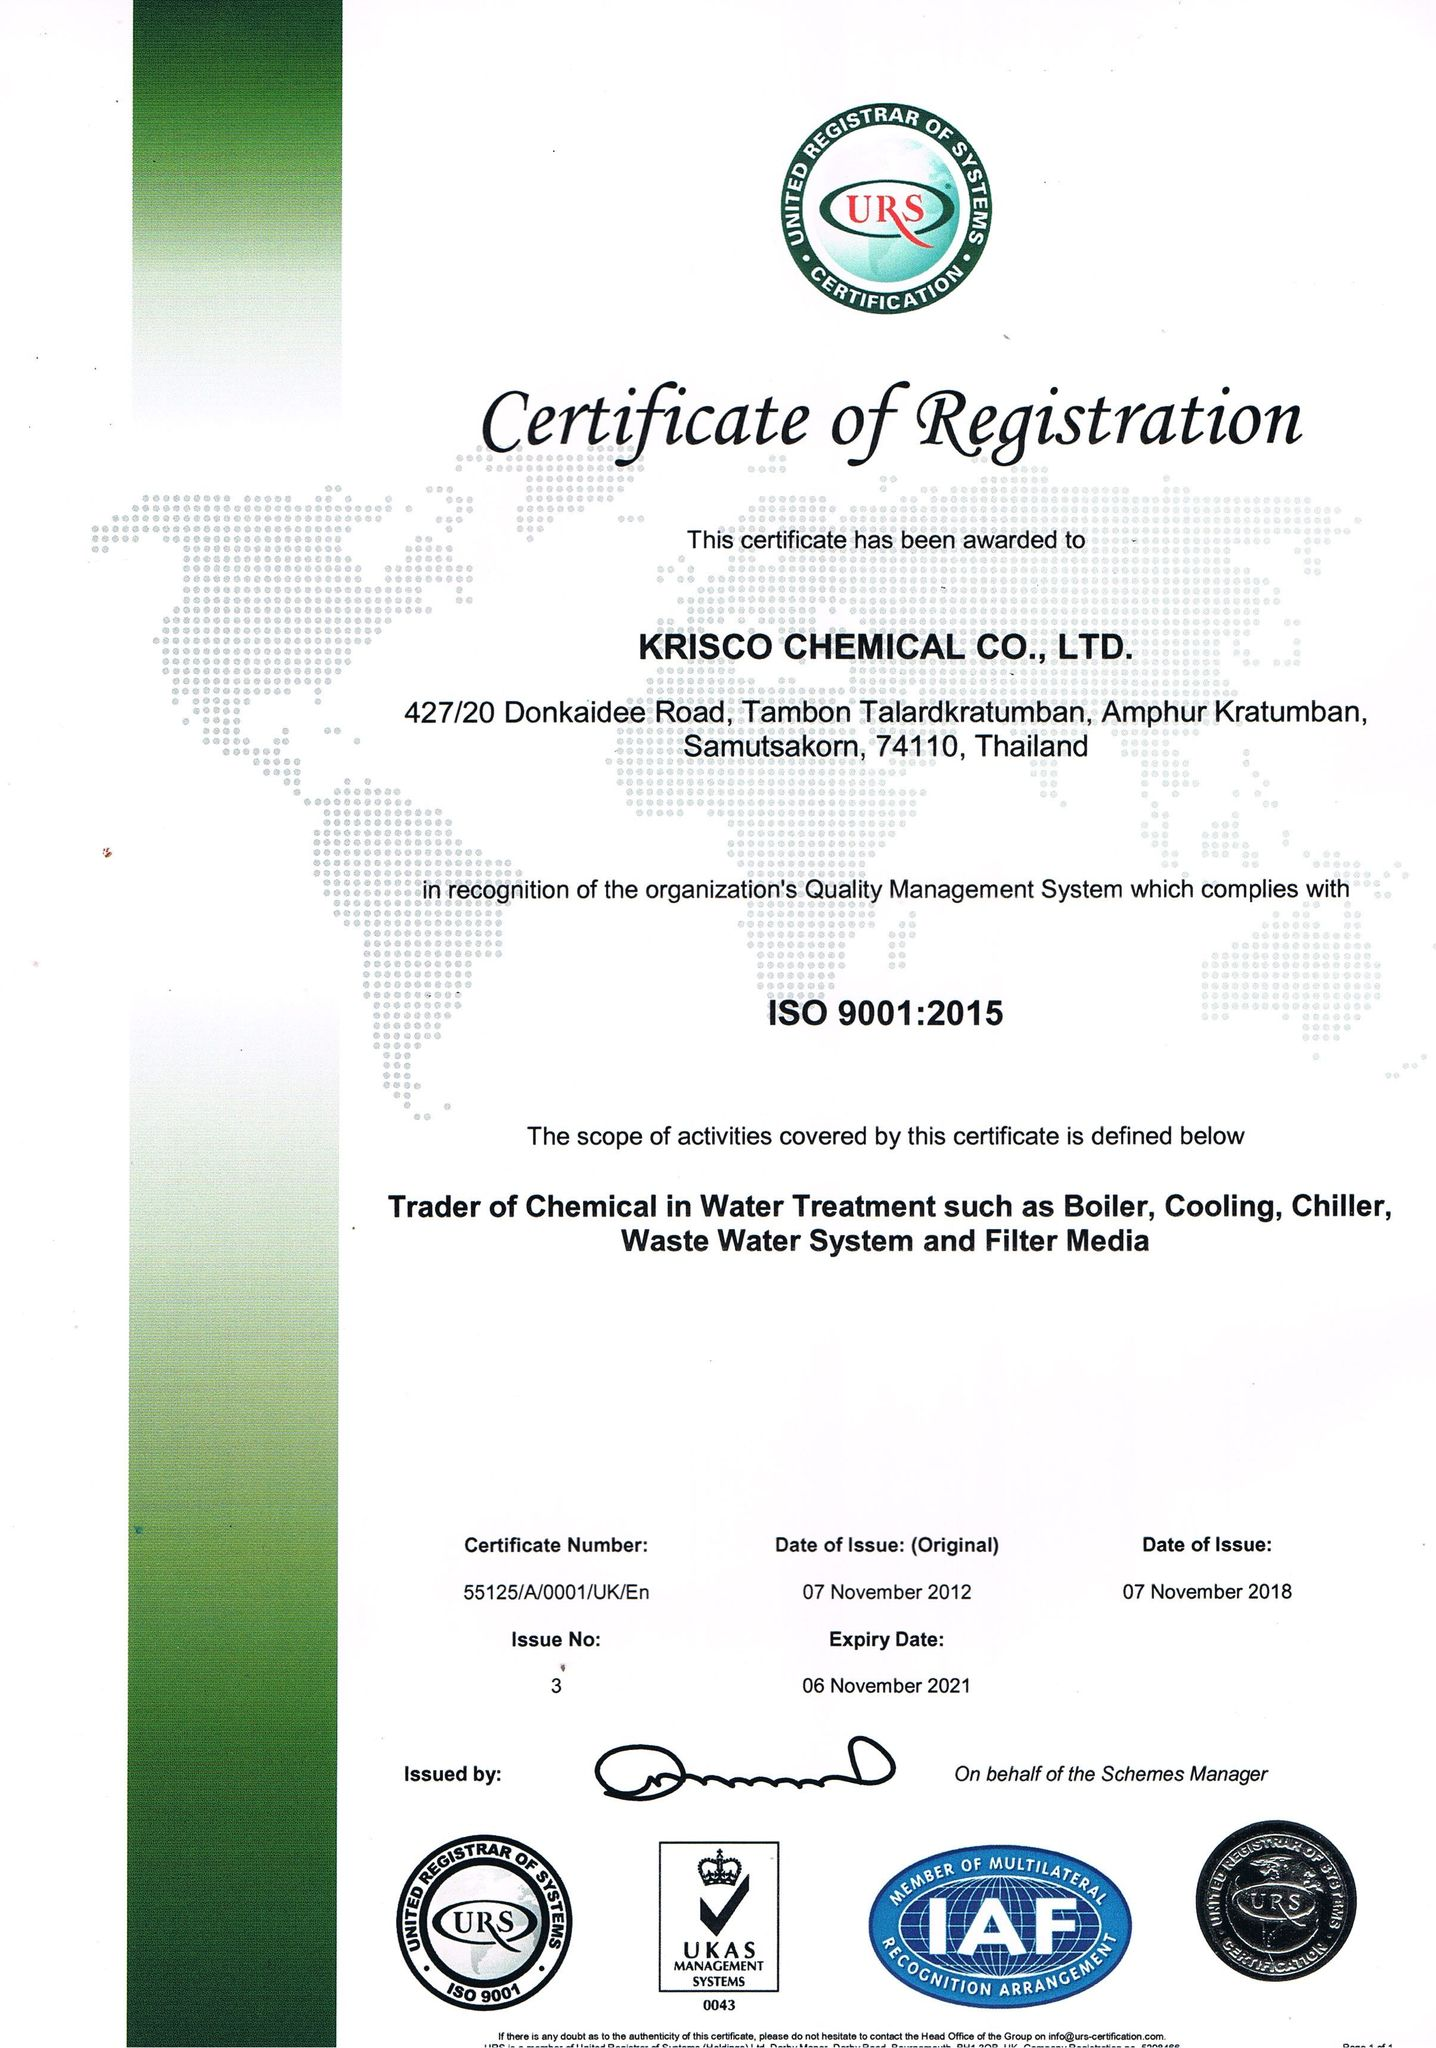 Certificate of Registration & Krisco chemical